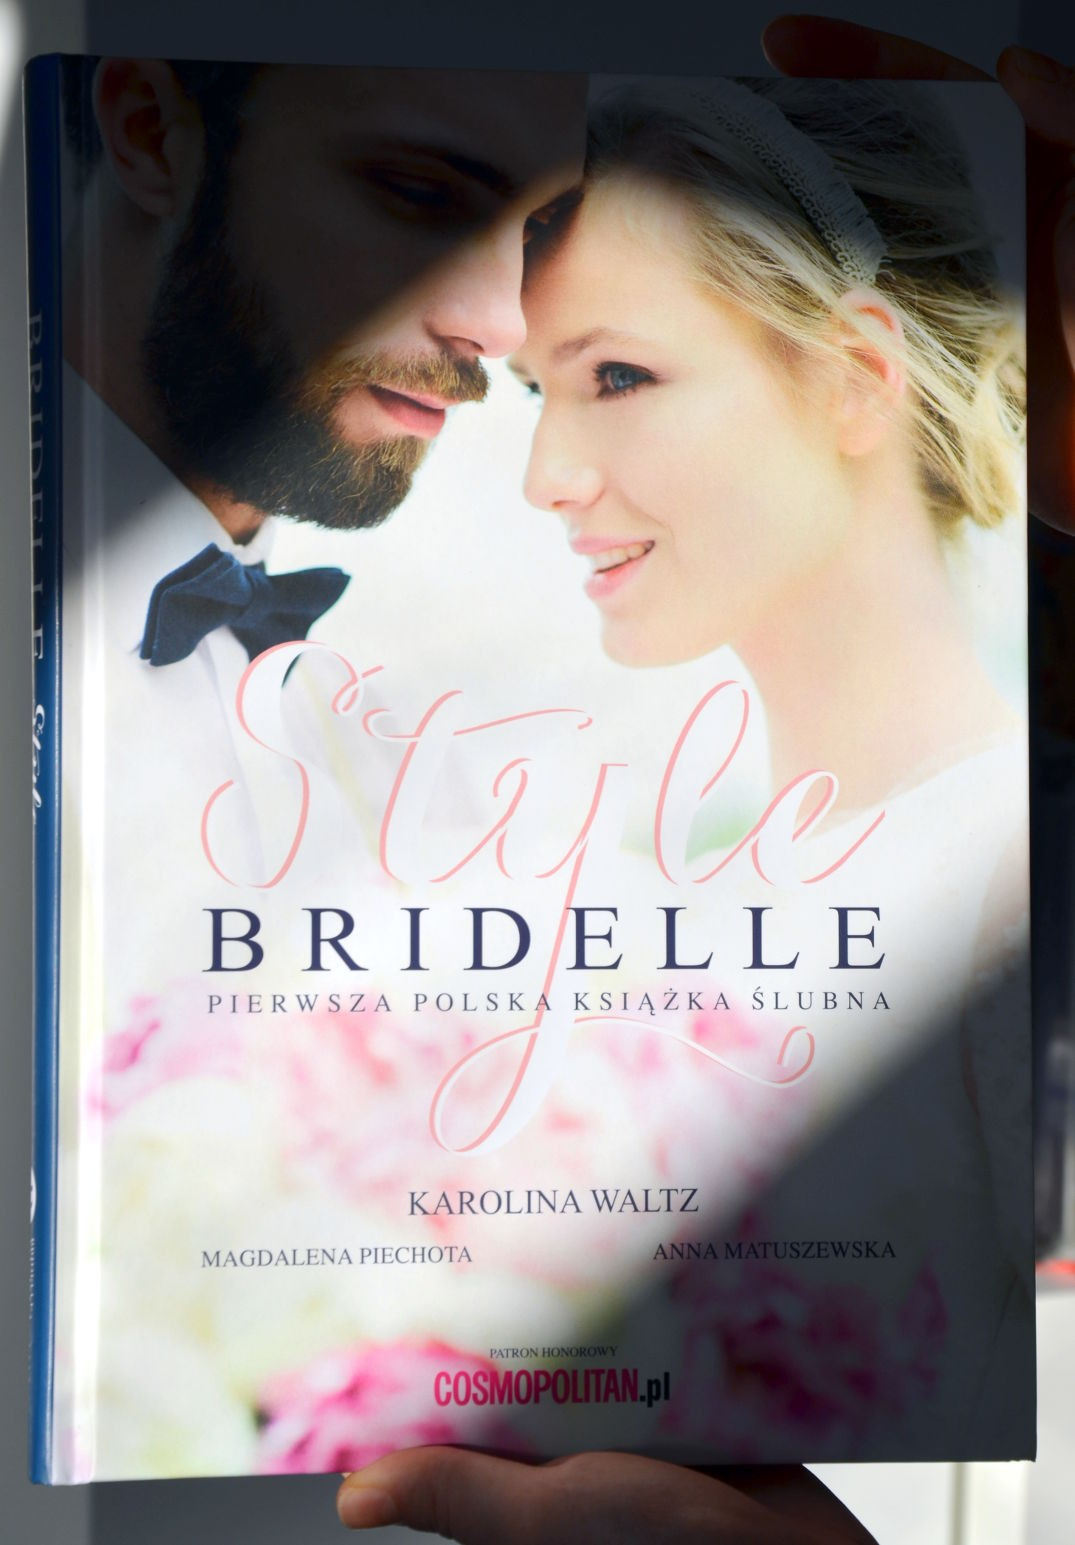 Bridelle book cover